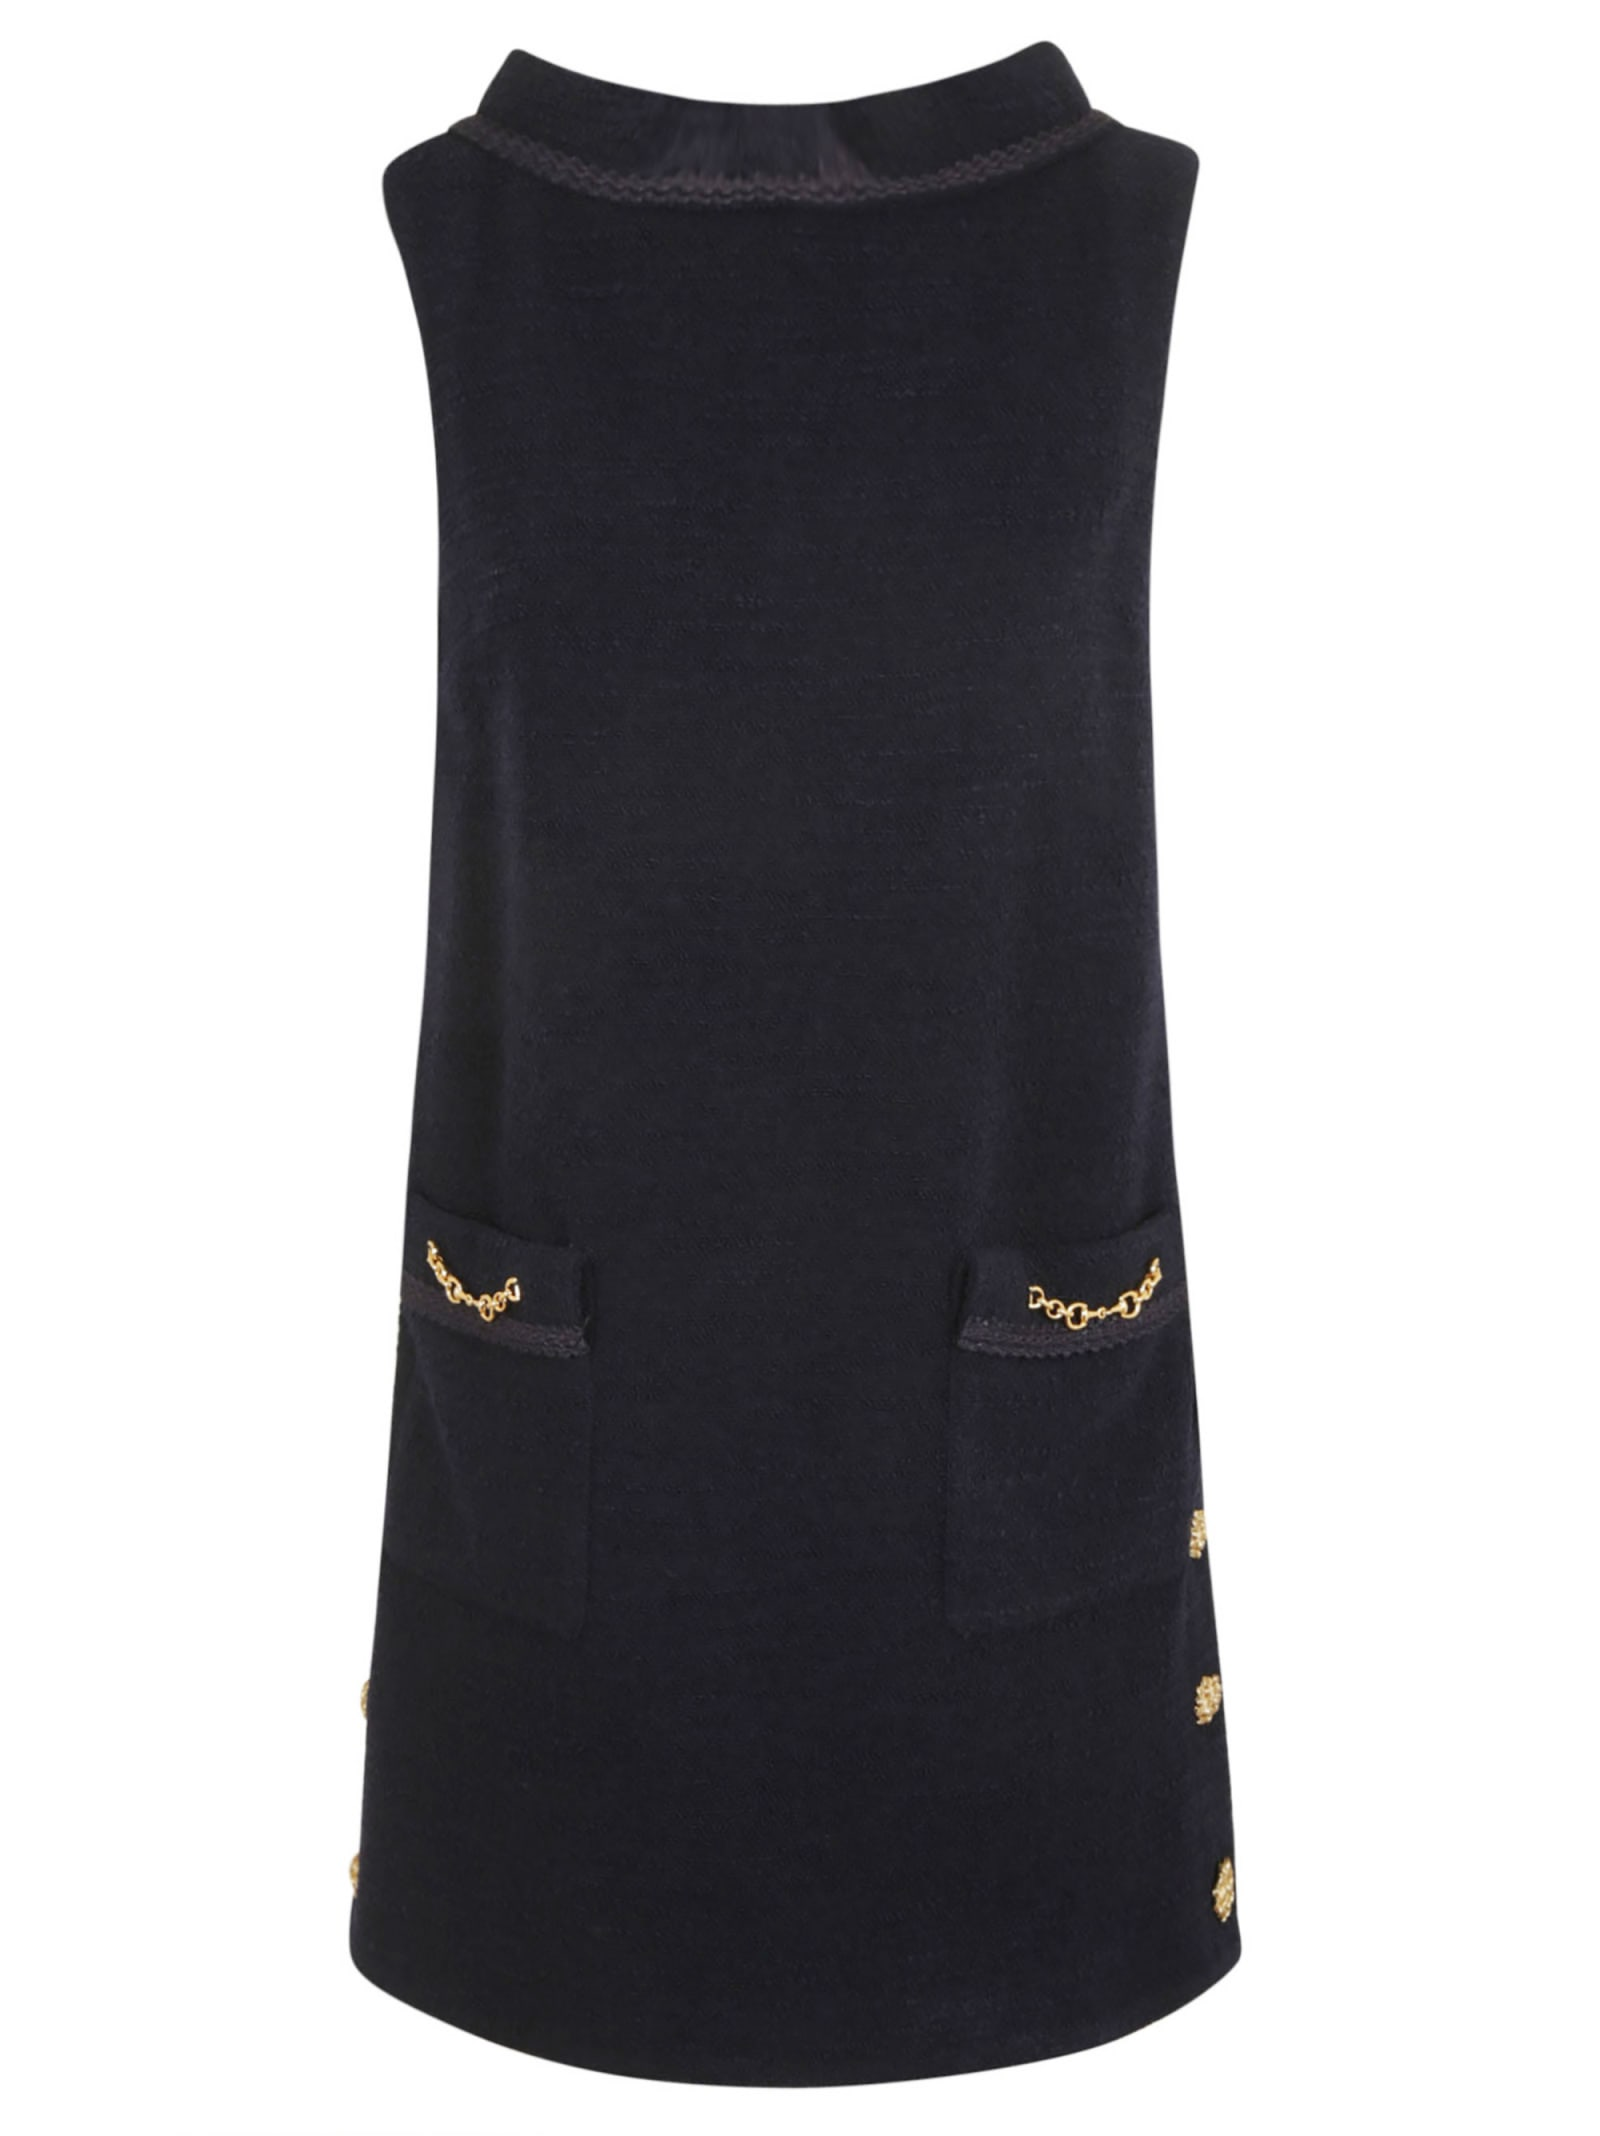 Buy Gucci Rear Zip Embellished Sleeveless Dress online, shop Gucci with free shipping